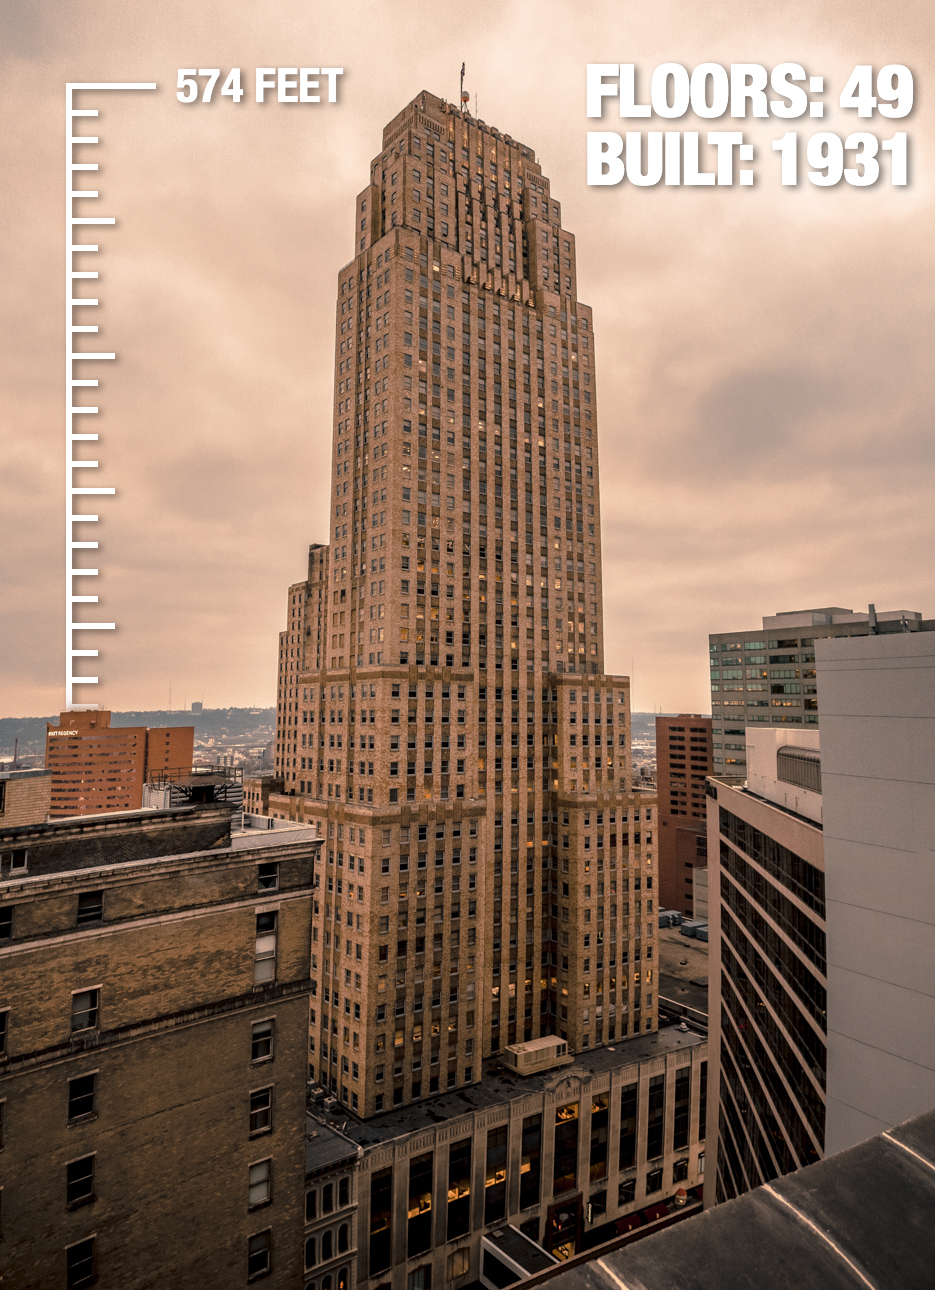 The Carew Tower: 574 feet tall, 49 floors, built in 1931 / Image: Phil Armstrong, Cincinnati Refined // Published: 2.21.17